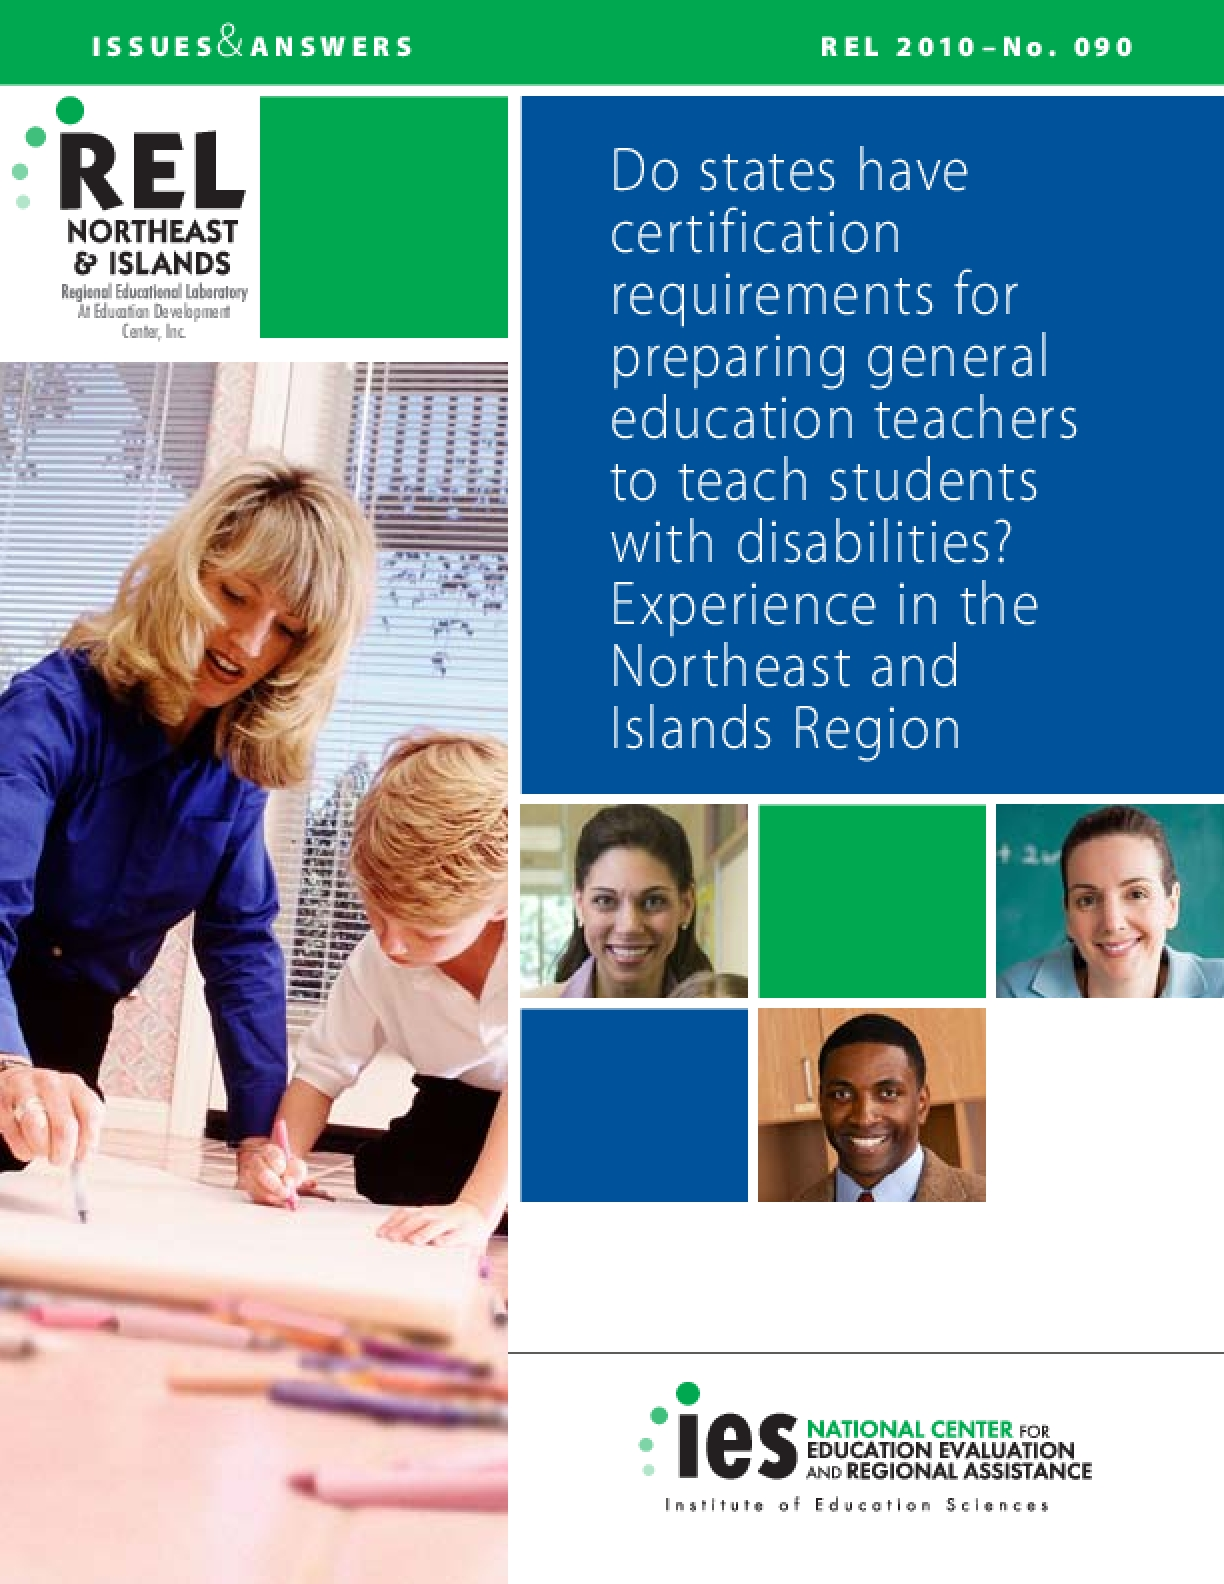 Do States Have Certification Requirements for Preparing General Education Teachers to Teach Students with Disabilities? Experience in the Northeast and Islands Region